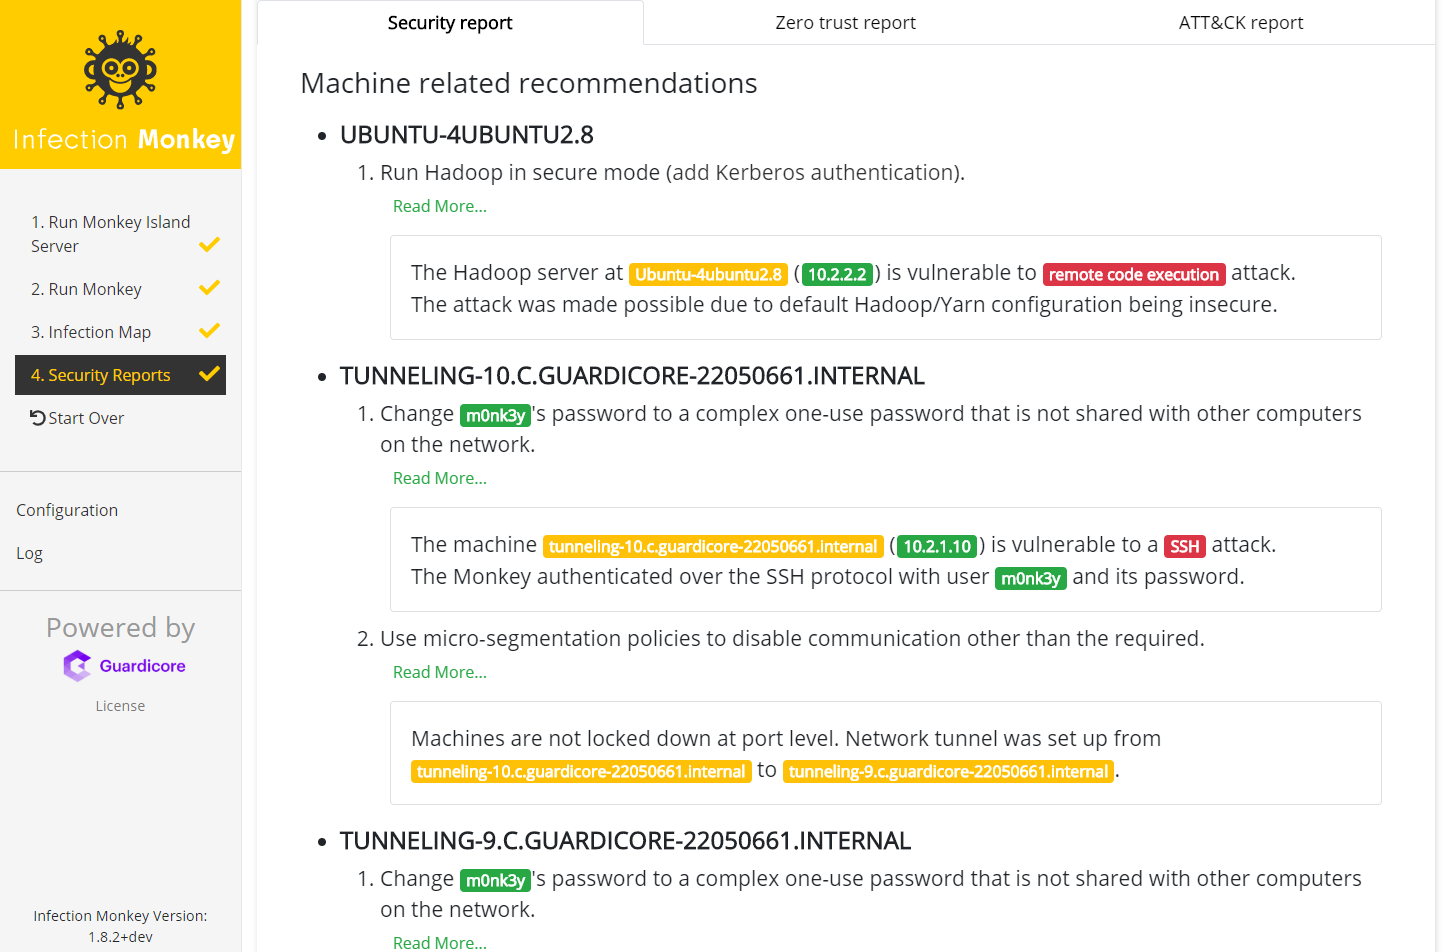 Machine related recommendations